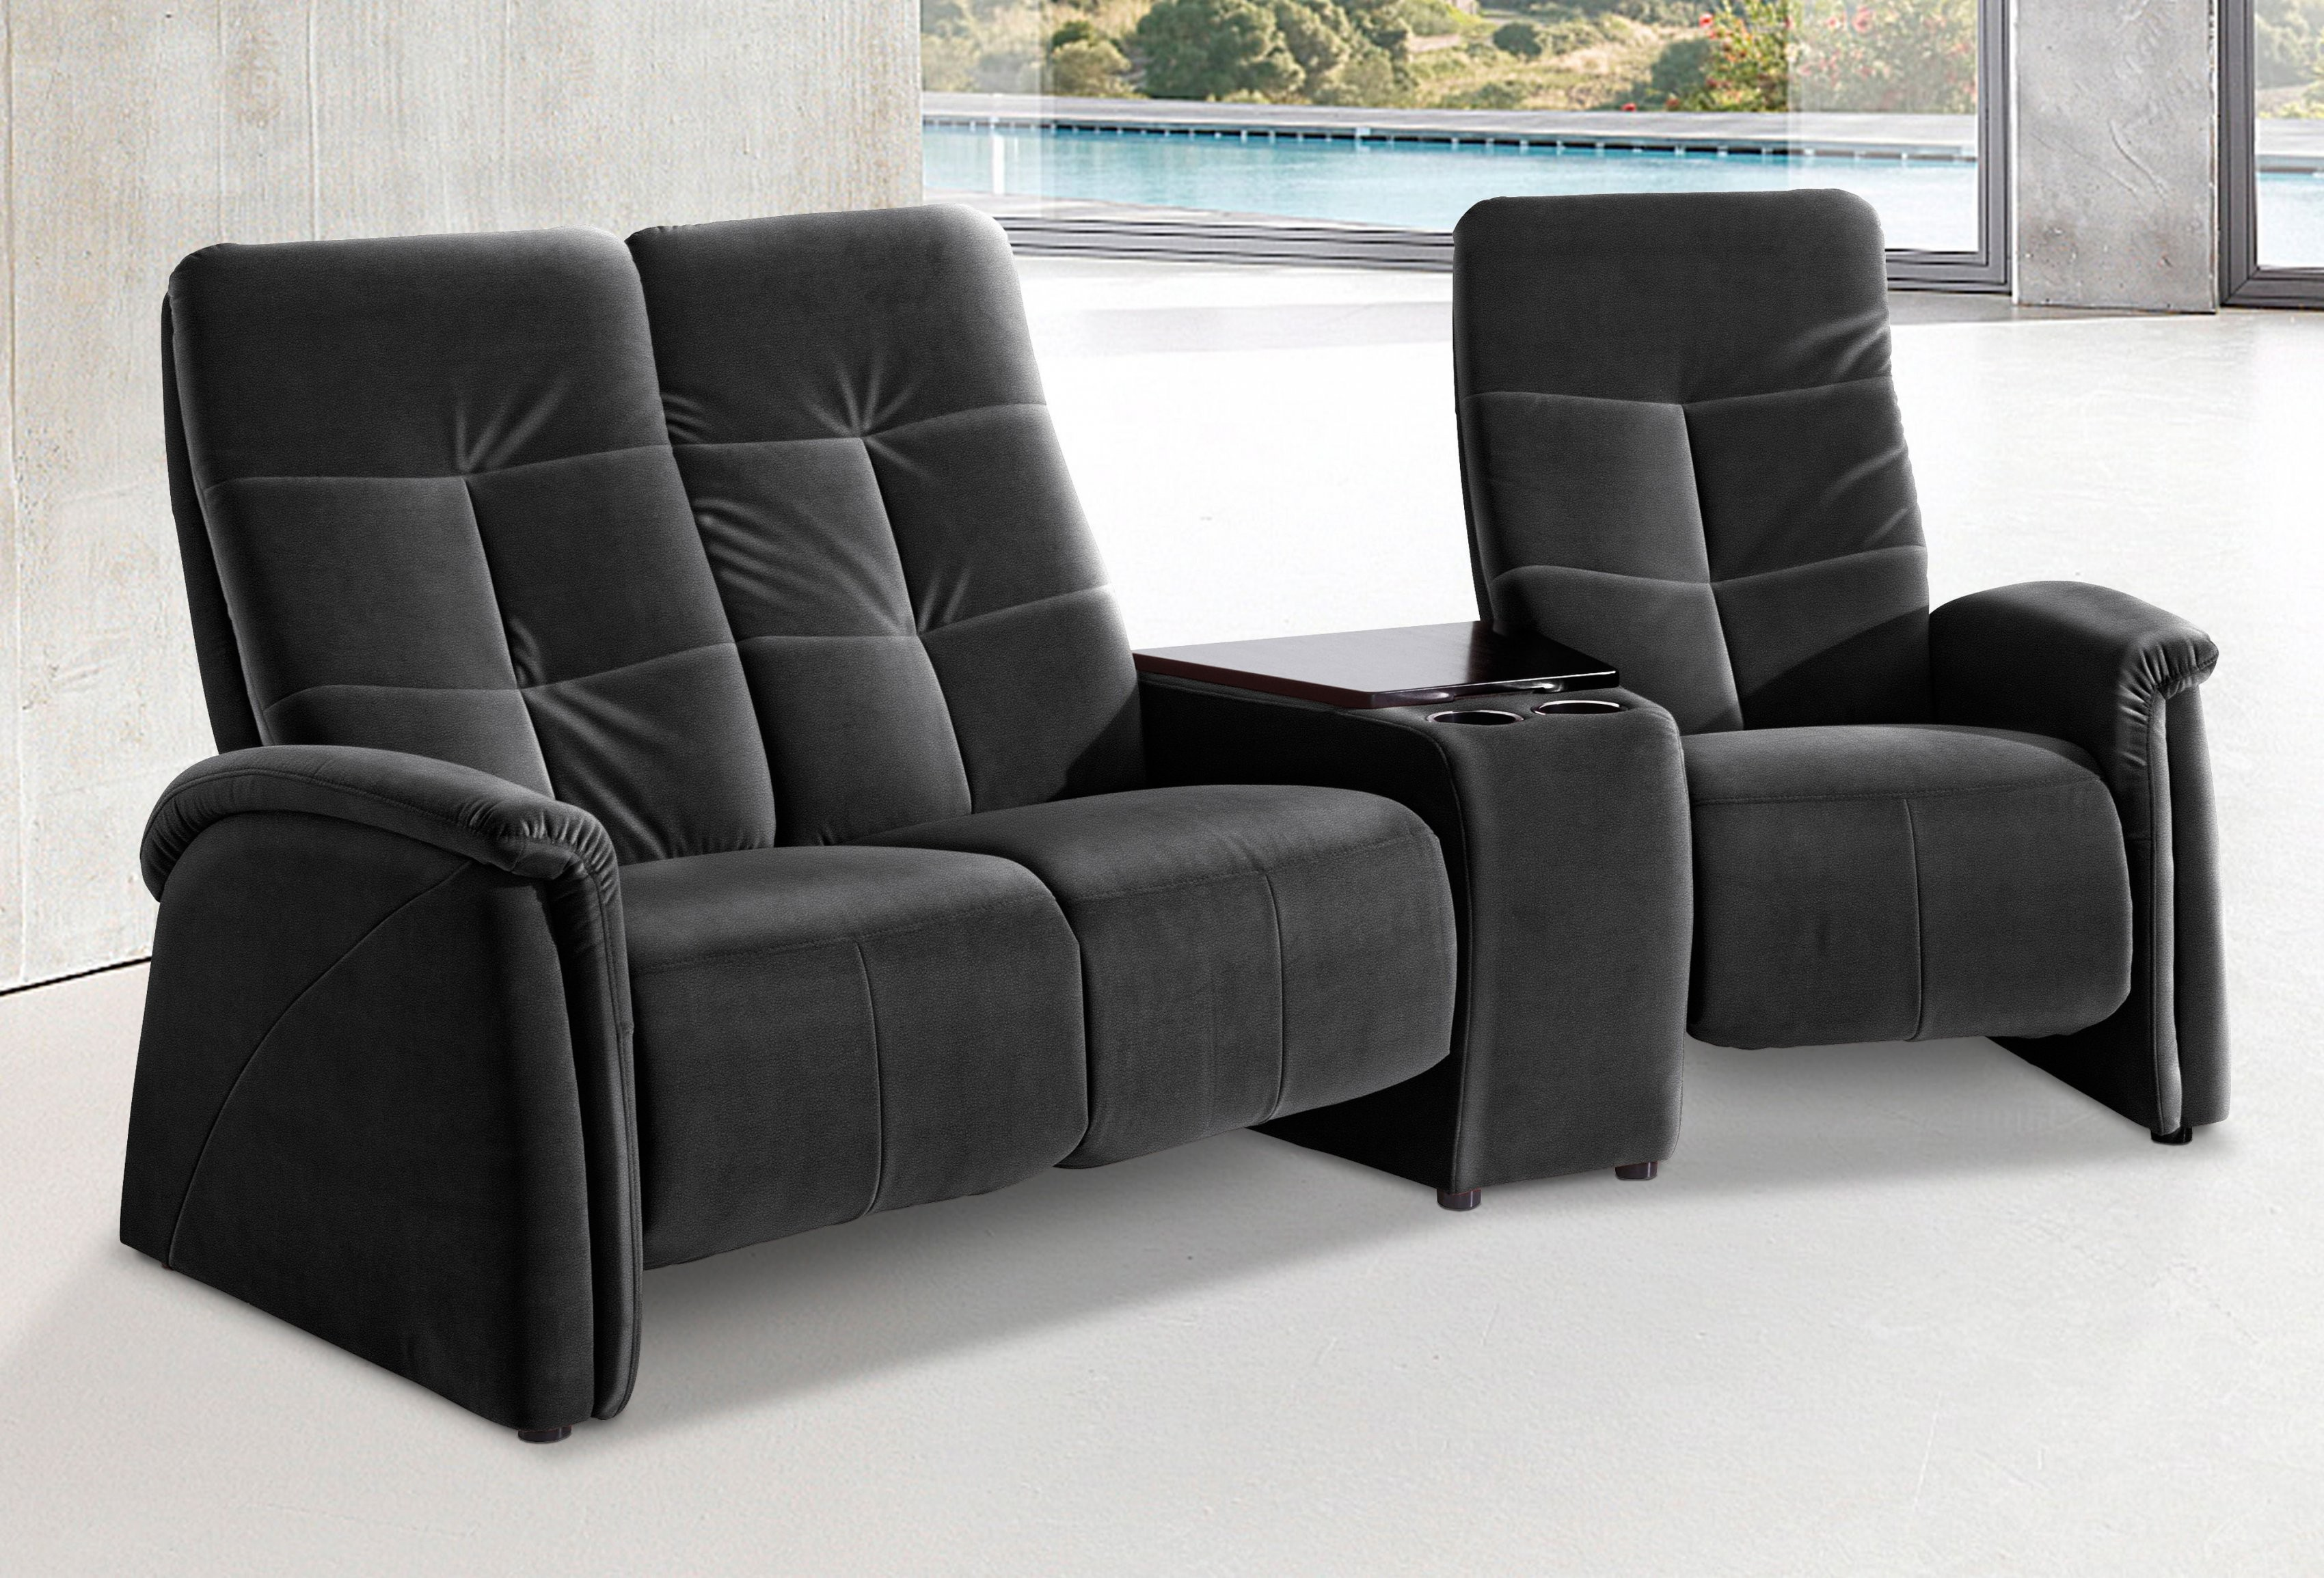 City Sofa Mit Relaxfunktion 2 Sitzer City Sofa Mit Relaxfunktion von 2 Sitzer City Sofa Mit Relaxfunktion Photo